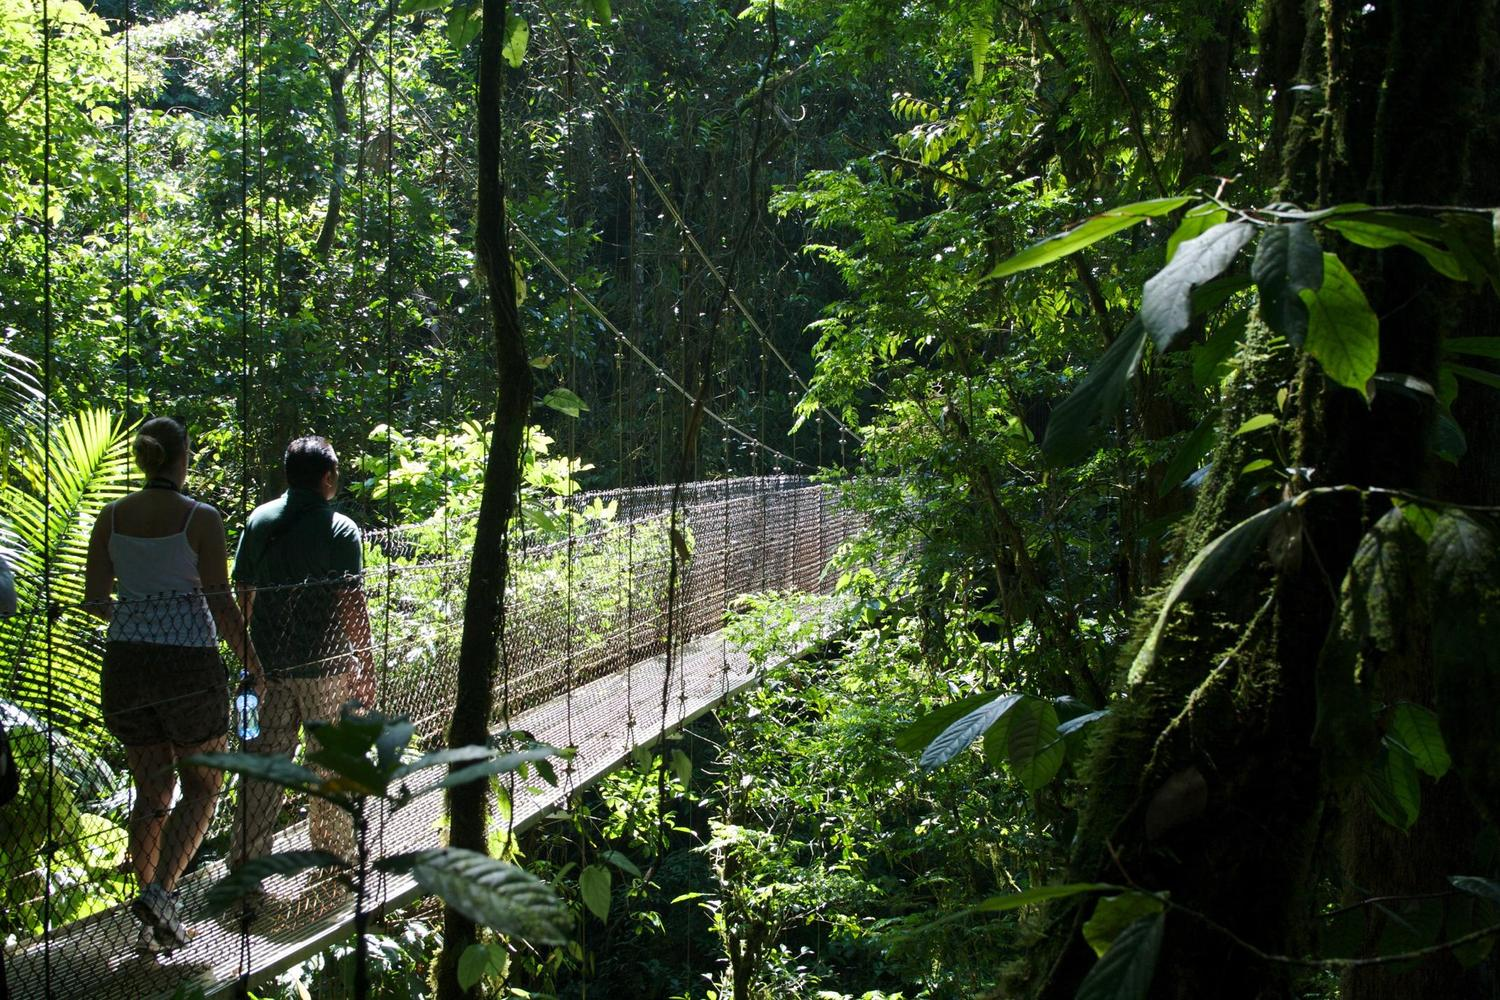 Walking across the hanging bridges through the forest canopy near Arenal volcano